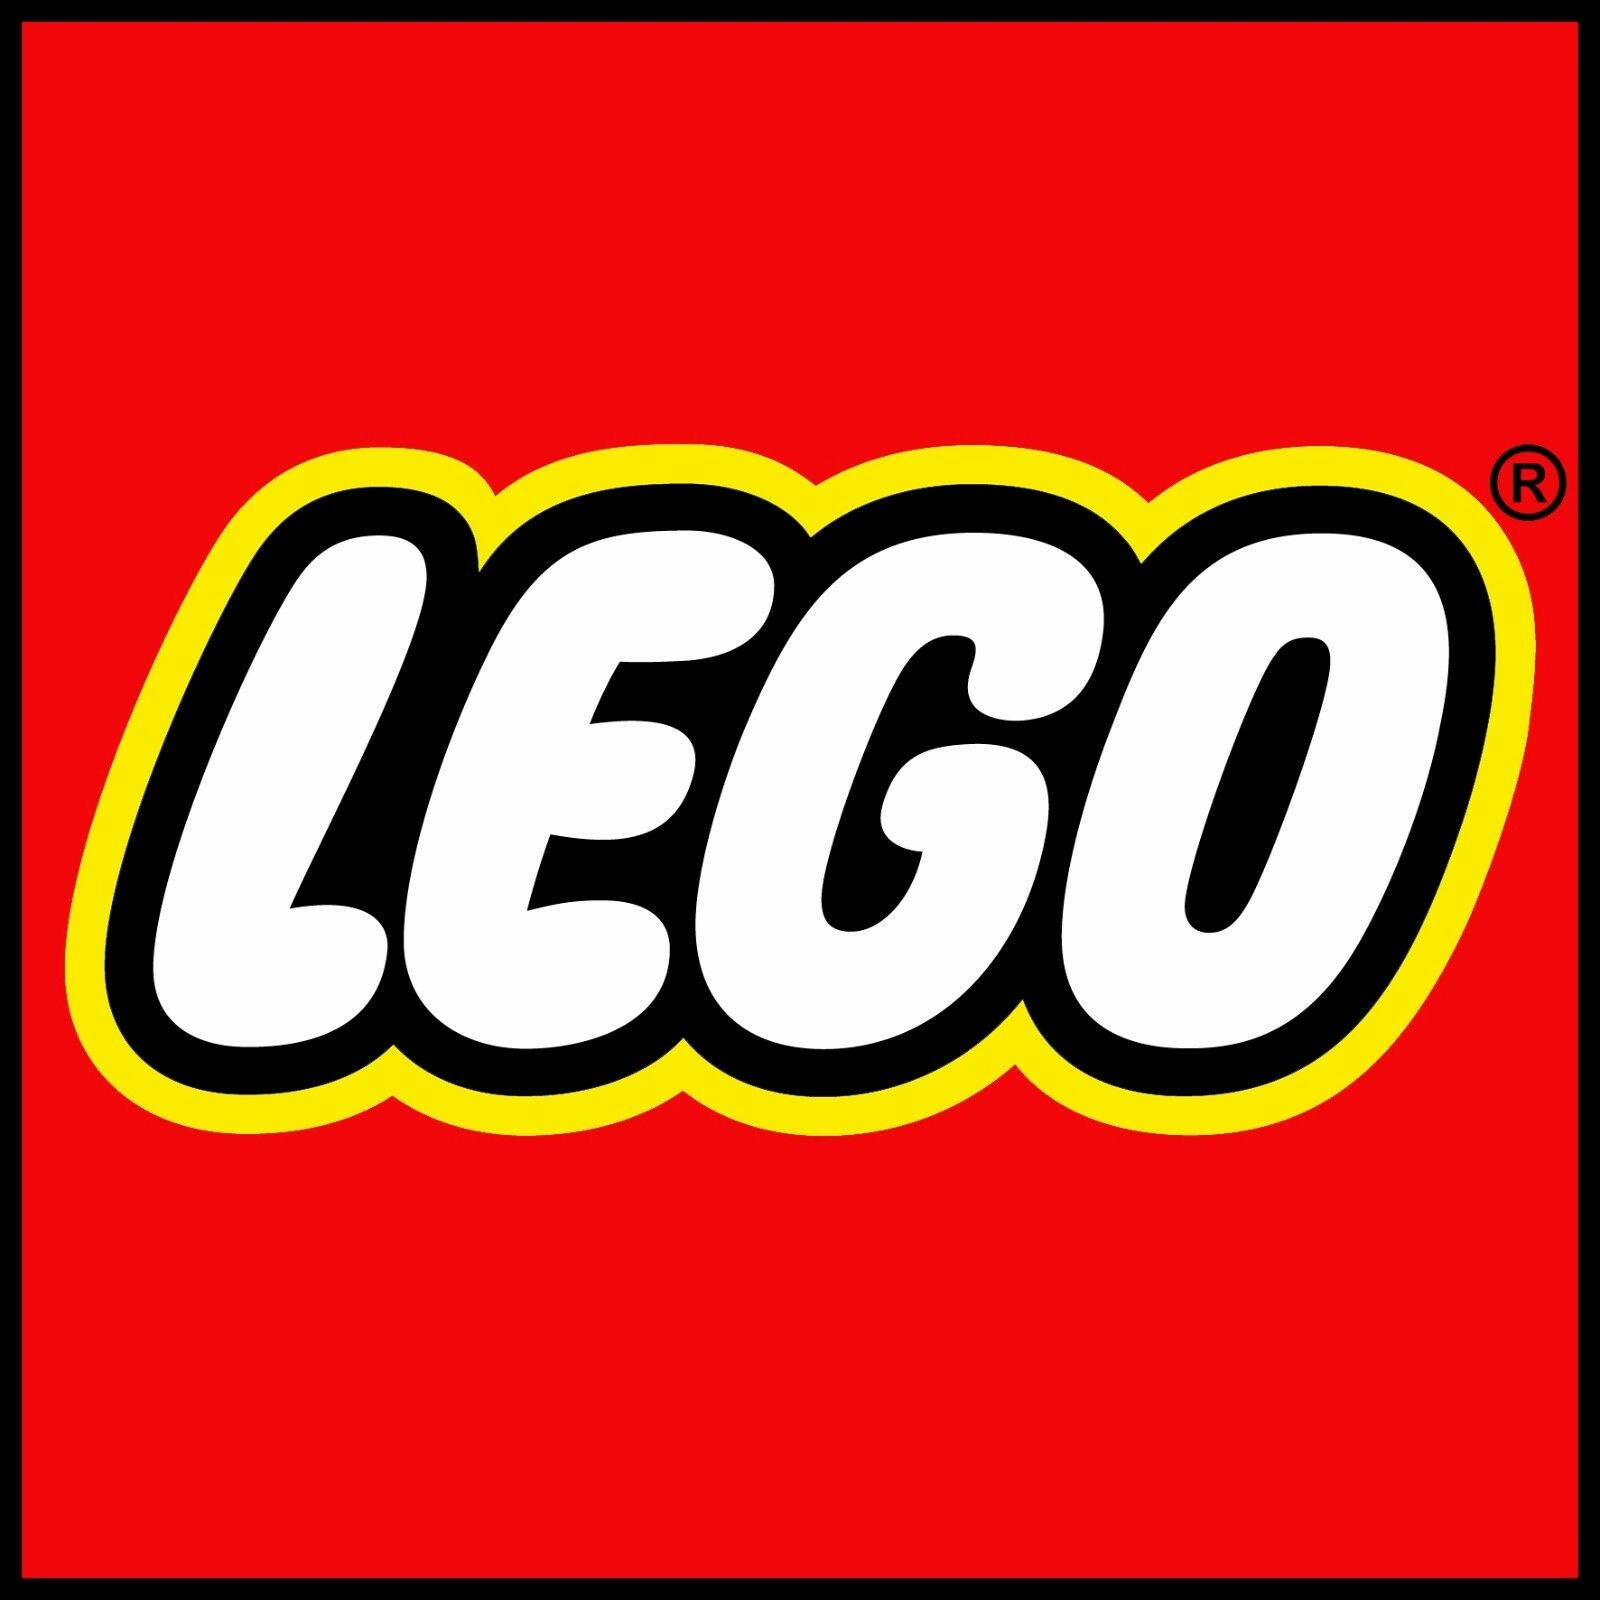 Lego Lot 2053   COMING SOON   TBU